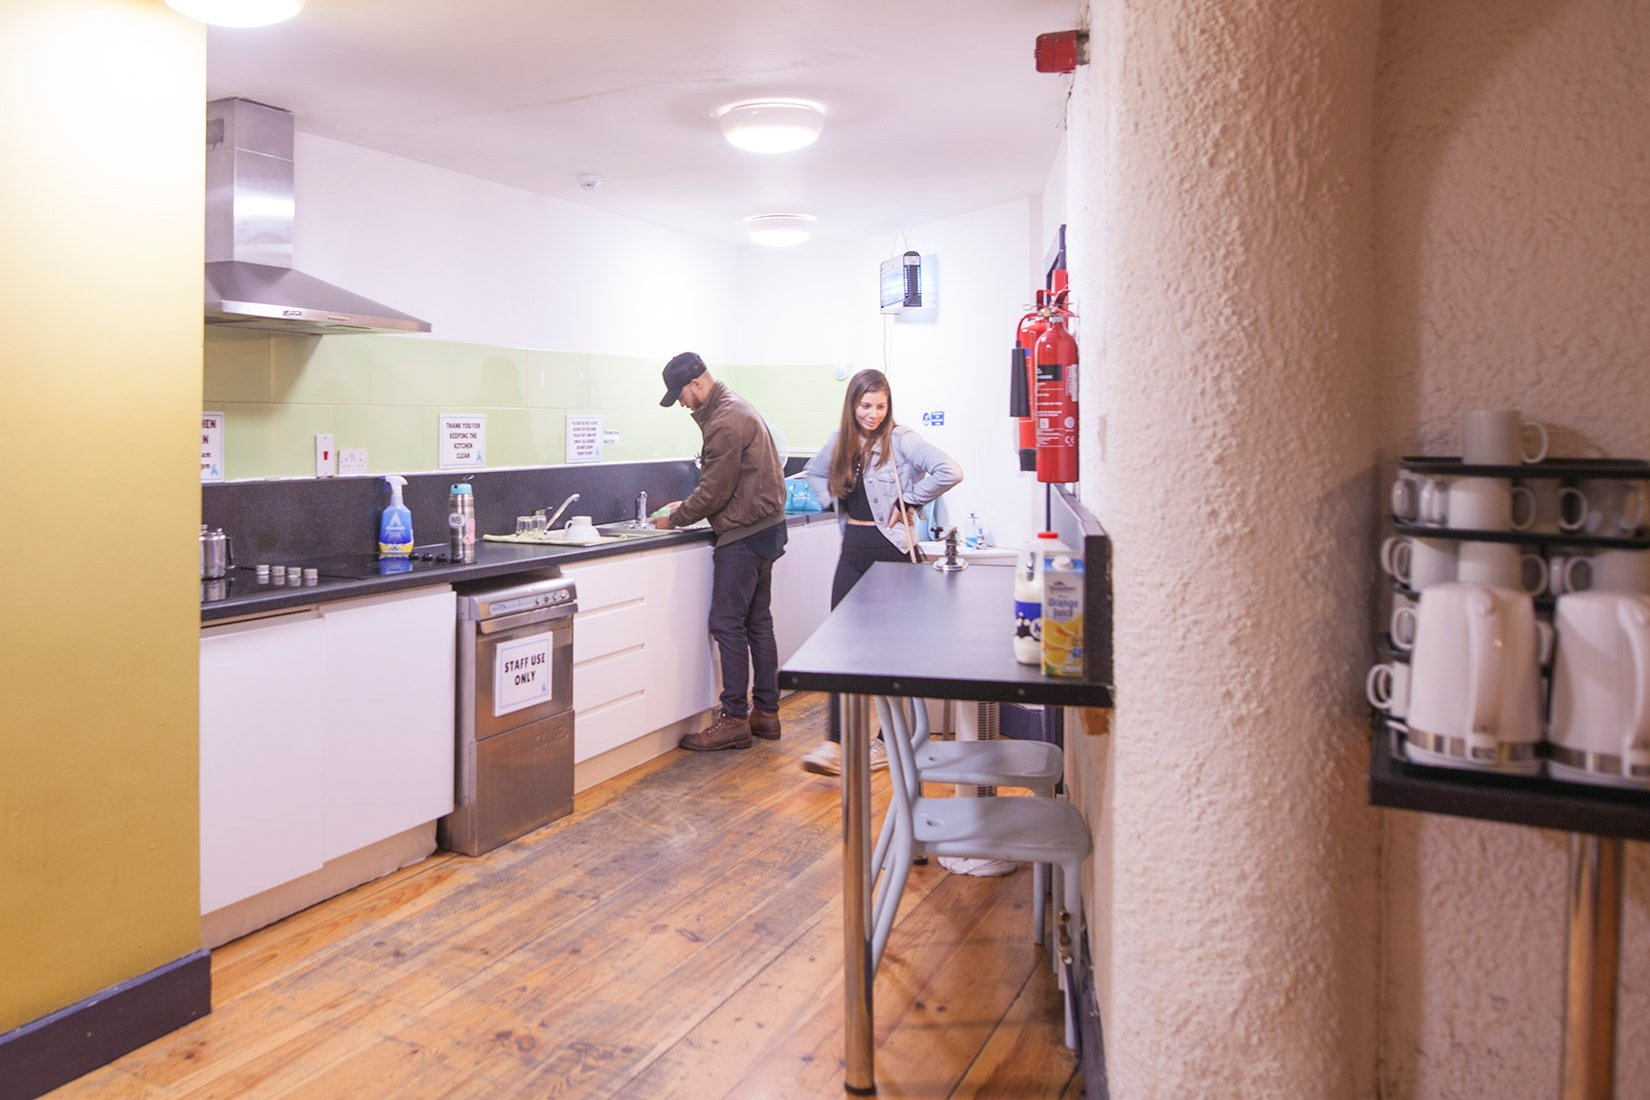 Tourists Preparing Food in the Self-Catering Kitchen in Hostel